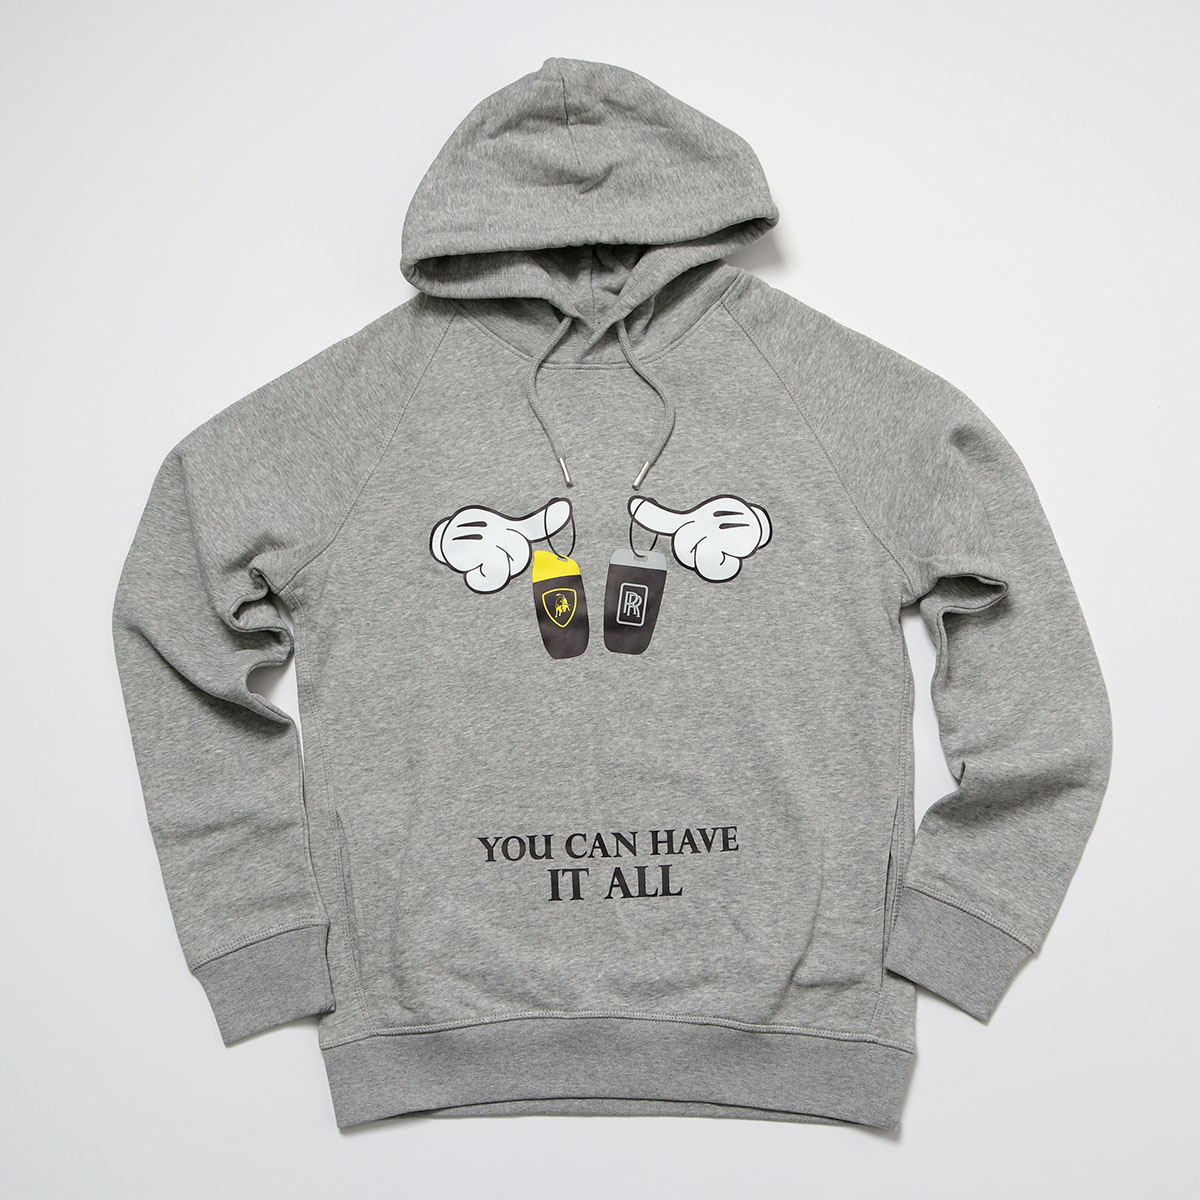 Trendy&Rare トレンディ&レア YOU CAN HAVE IT ALL HOODIE 長袖 プルオーバー スウェットパーカー プリント H-GREY メンズ